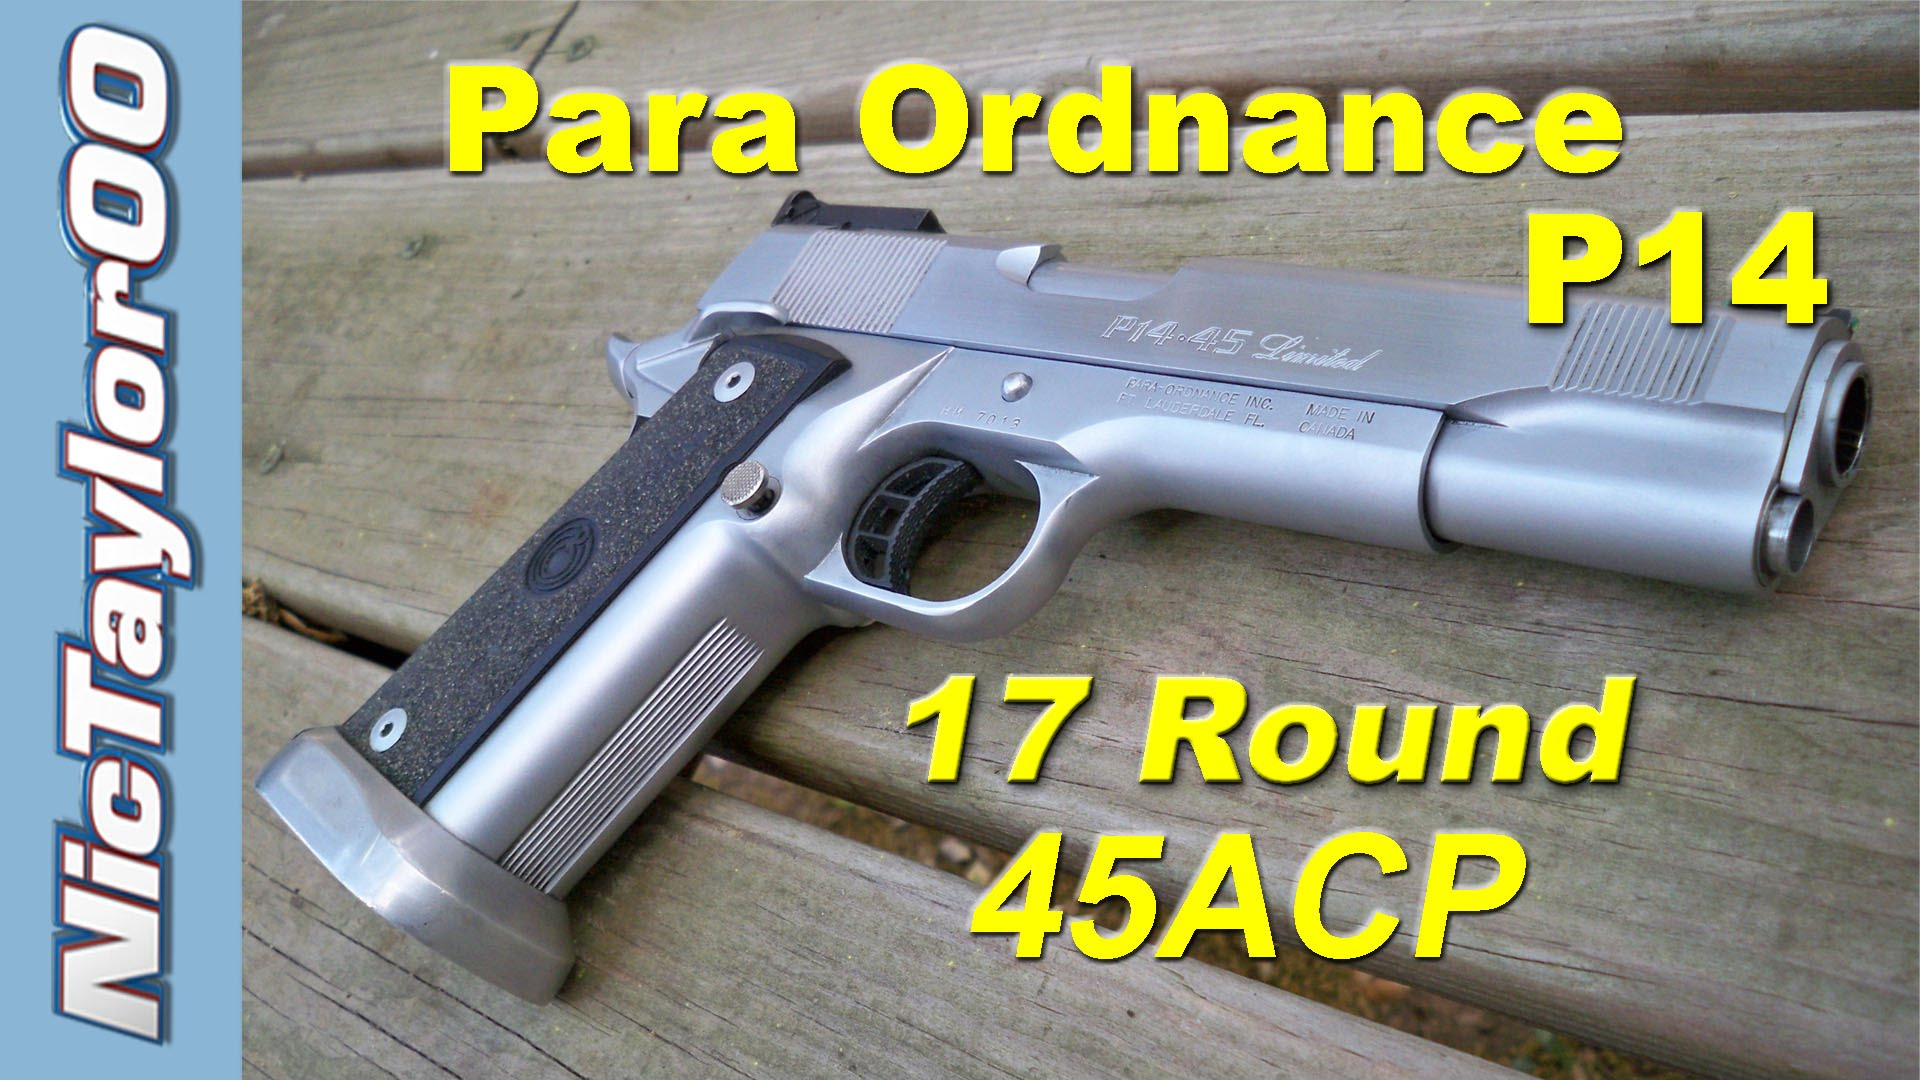 Para Ordnance P14 45ACP Limited Pistol for Competition (Review)